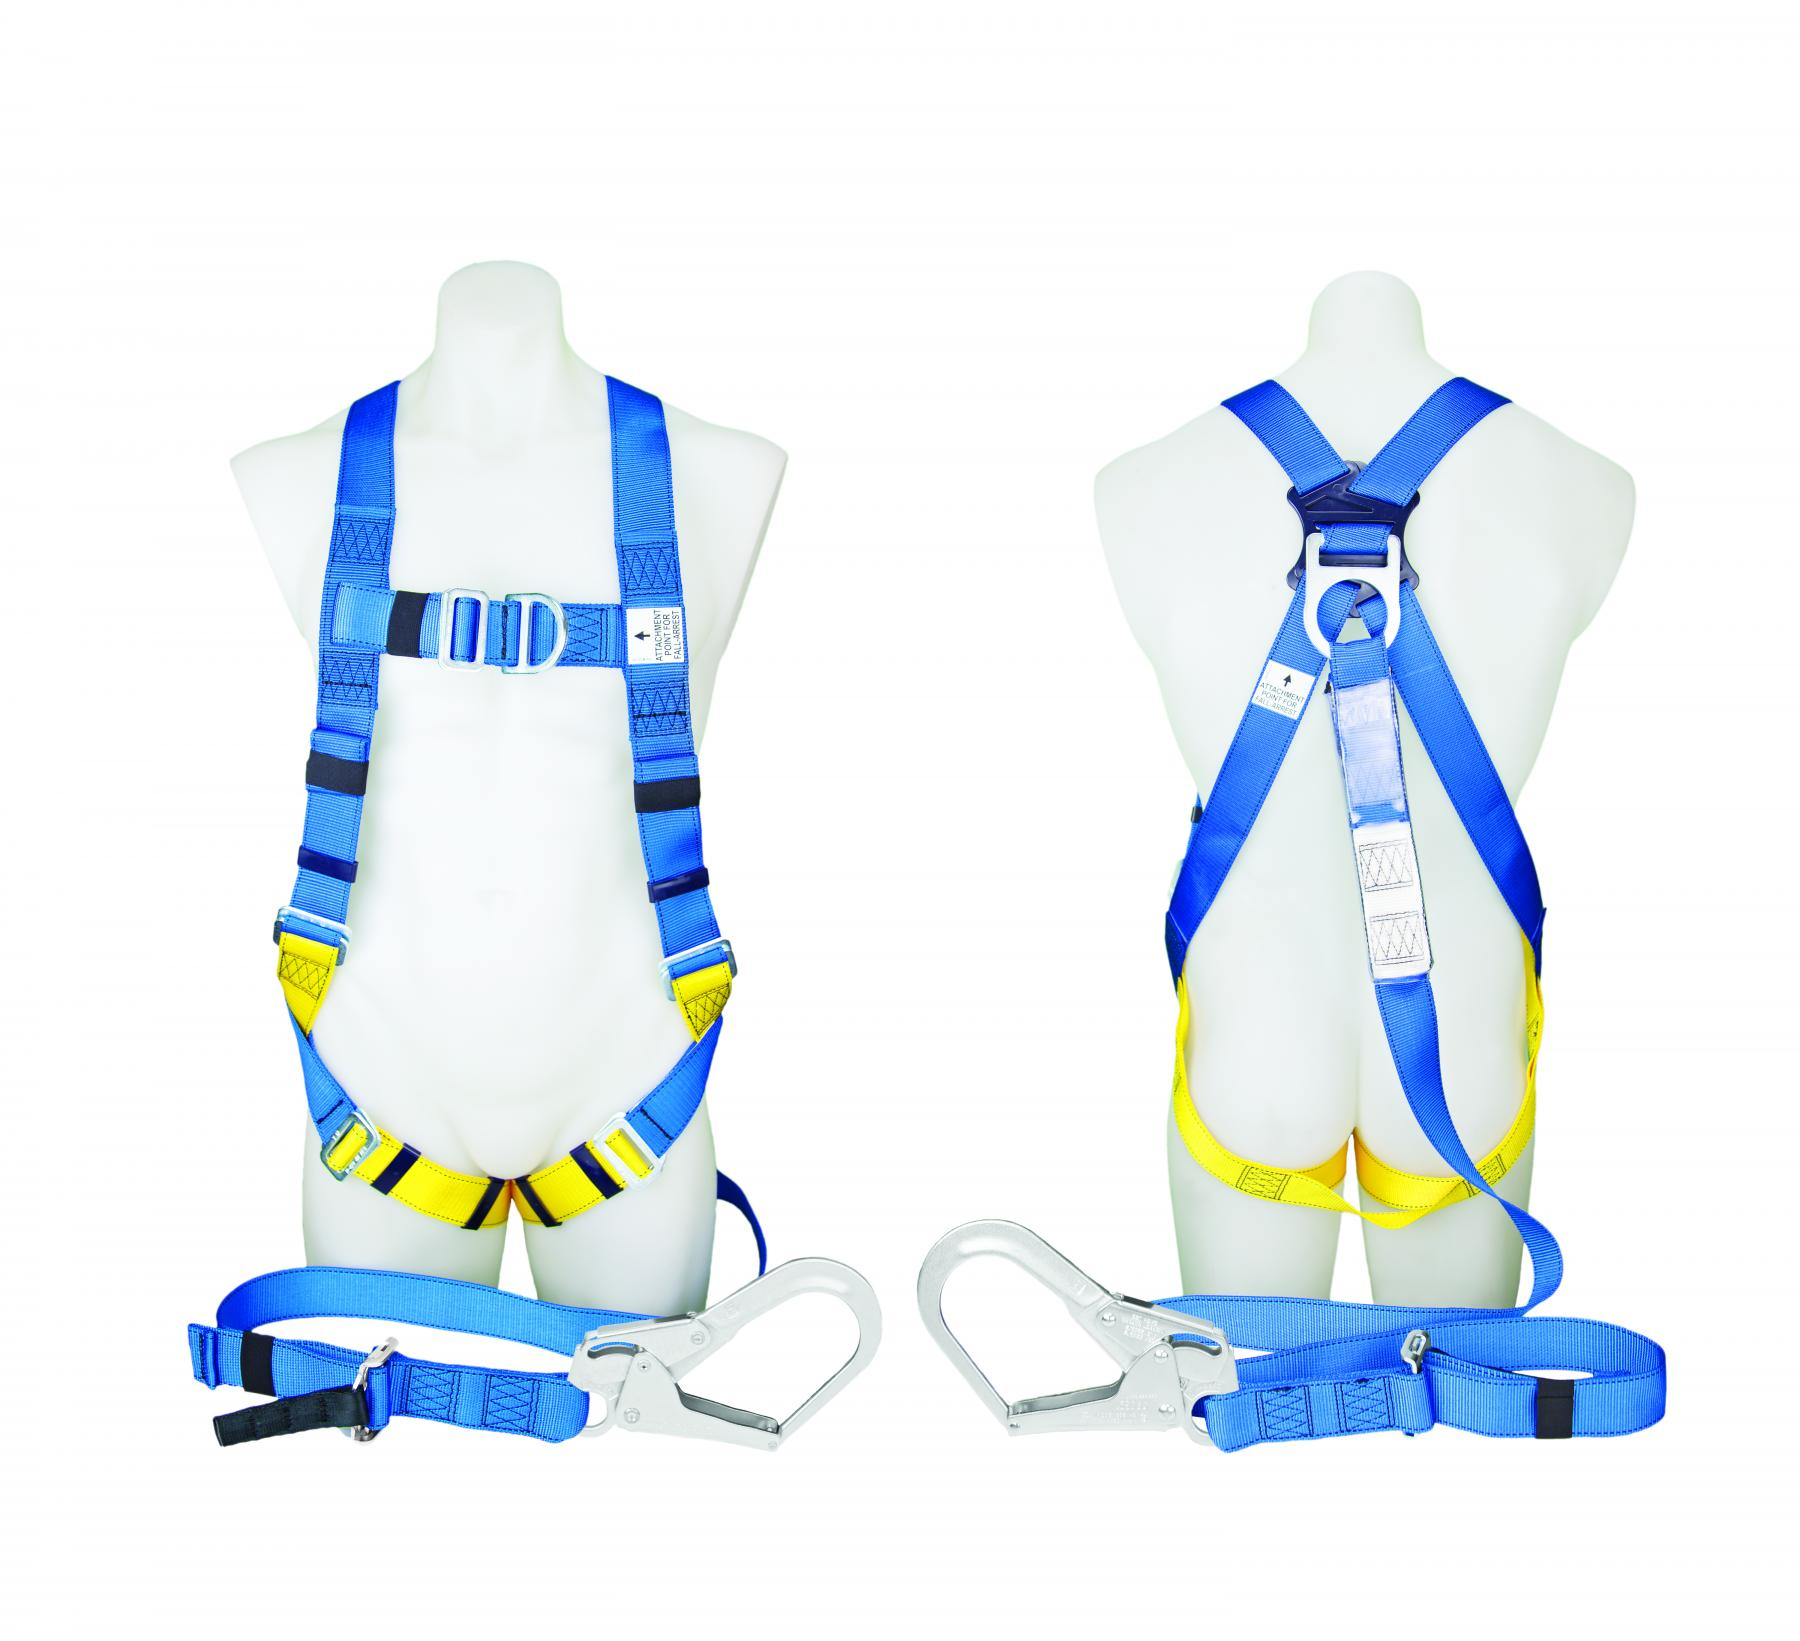 Armour Safety Products Ltd. - Protecta First Body Support - Industrial Harness with Scaffold Hook